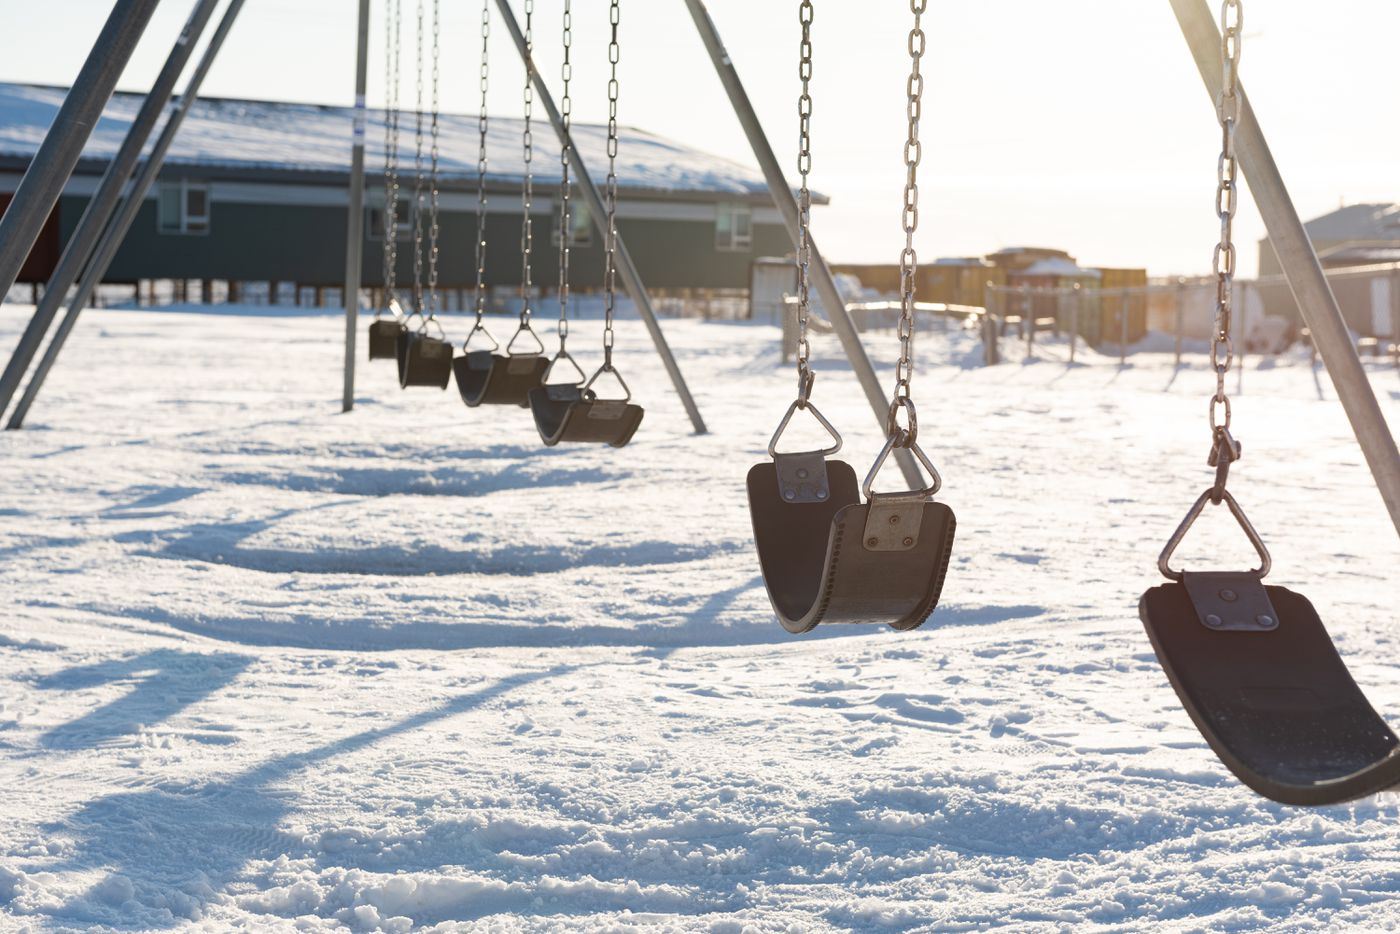 Swingset on the playground at Gladys Jung Elementary School in Bethel. (Katie Basile / KYUK)